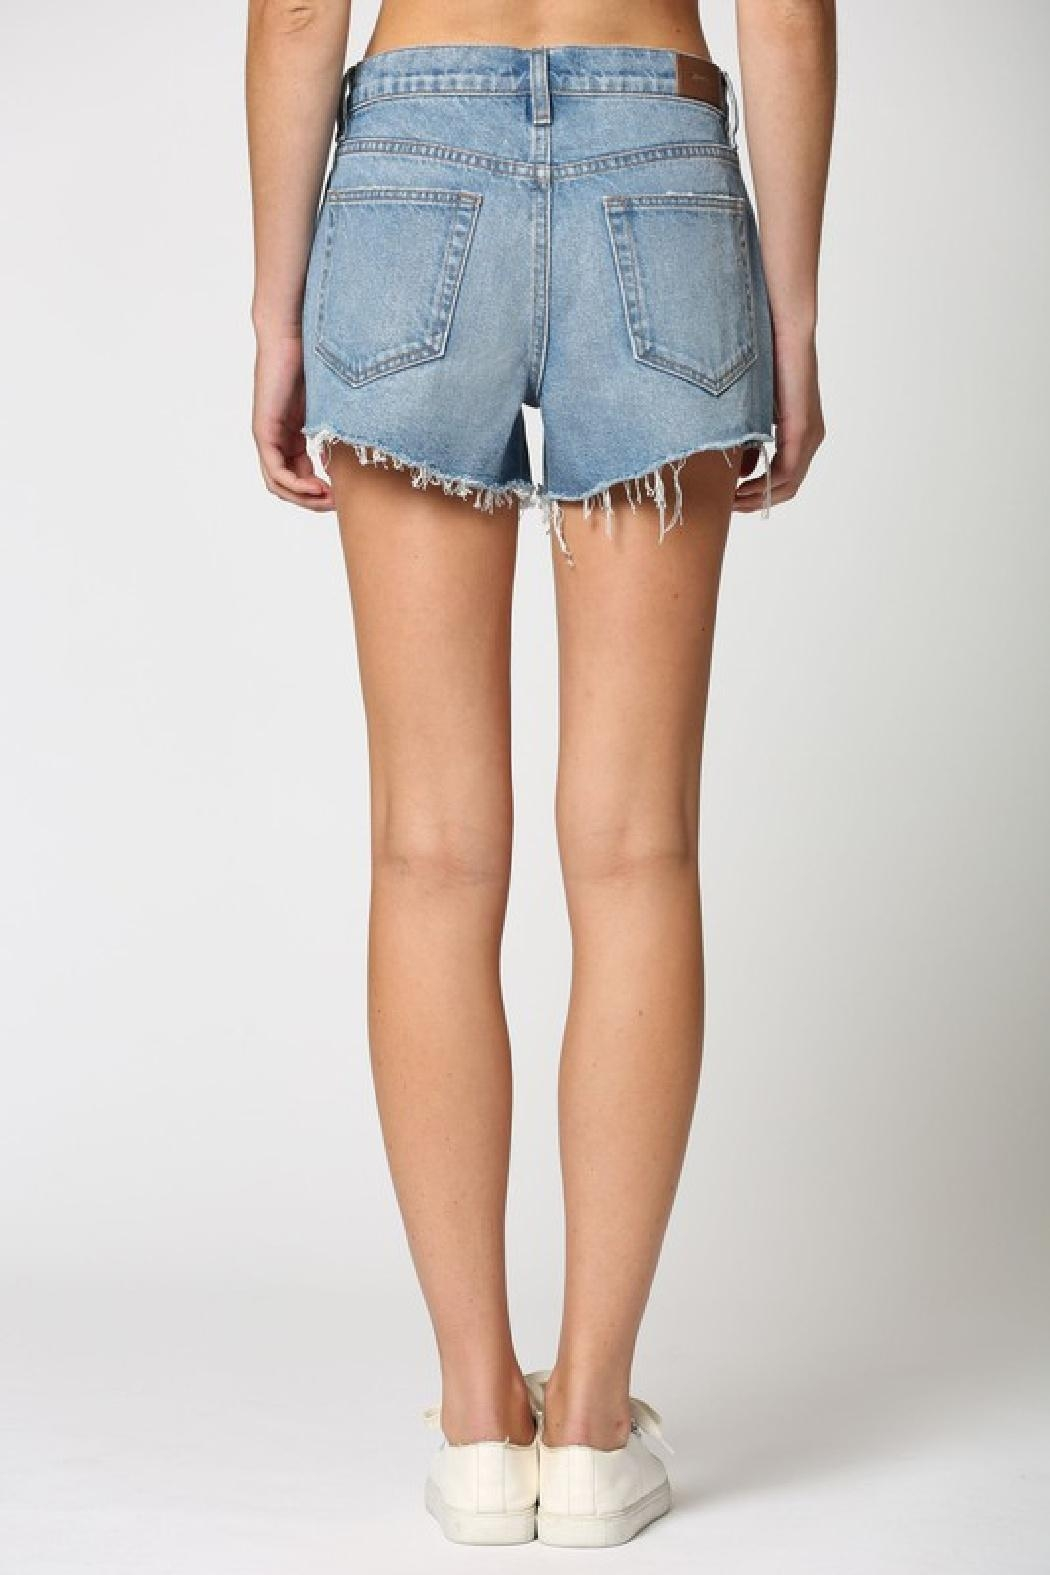 Hidden Jeans Kenzie Mid-Rise Shorts - Back Cropped Image